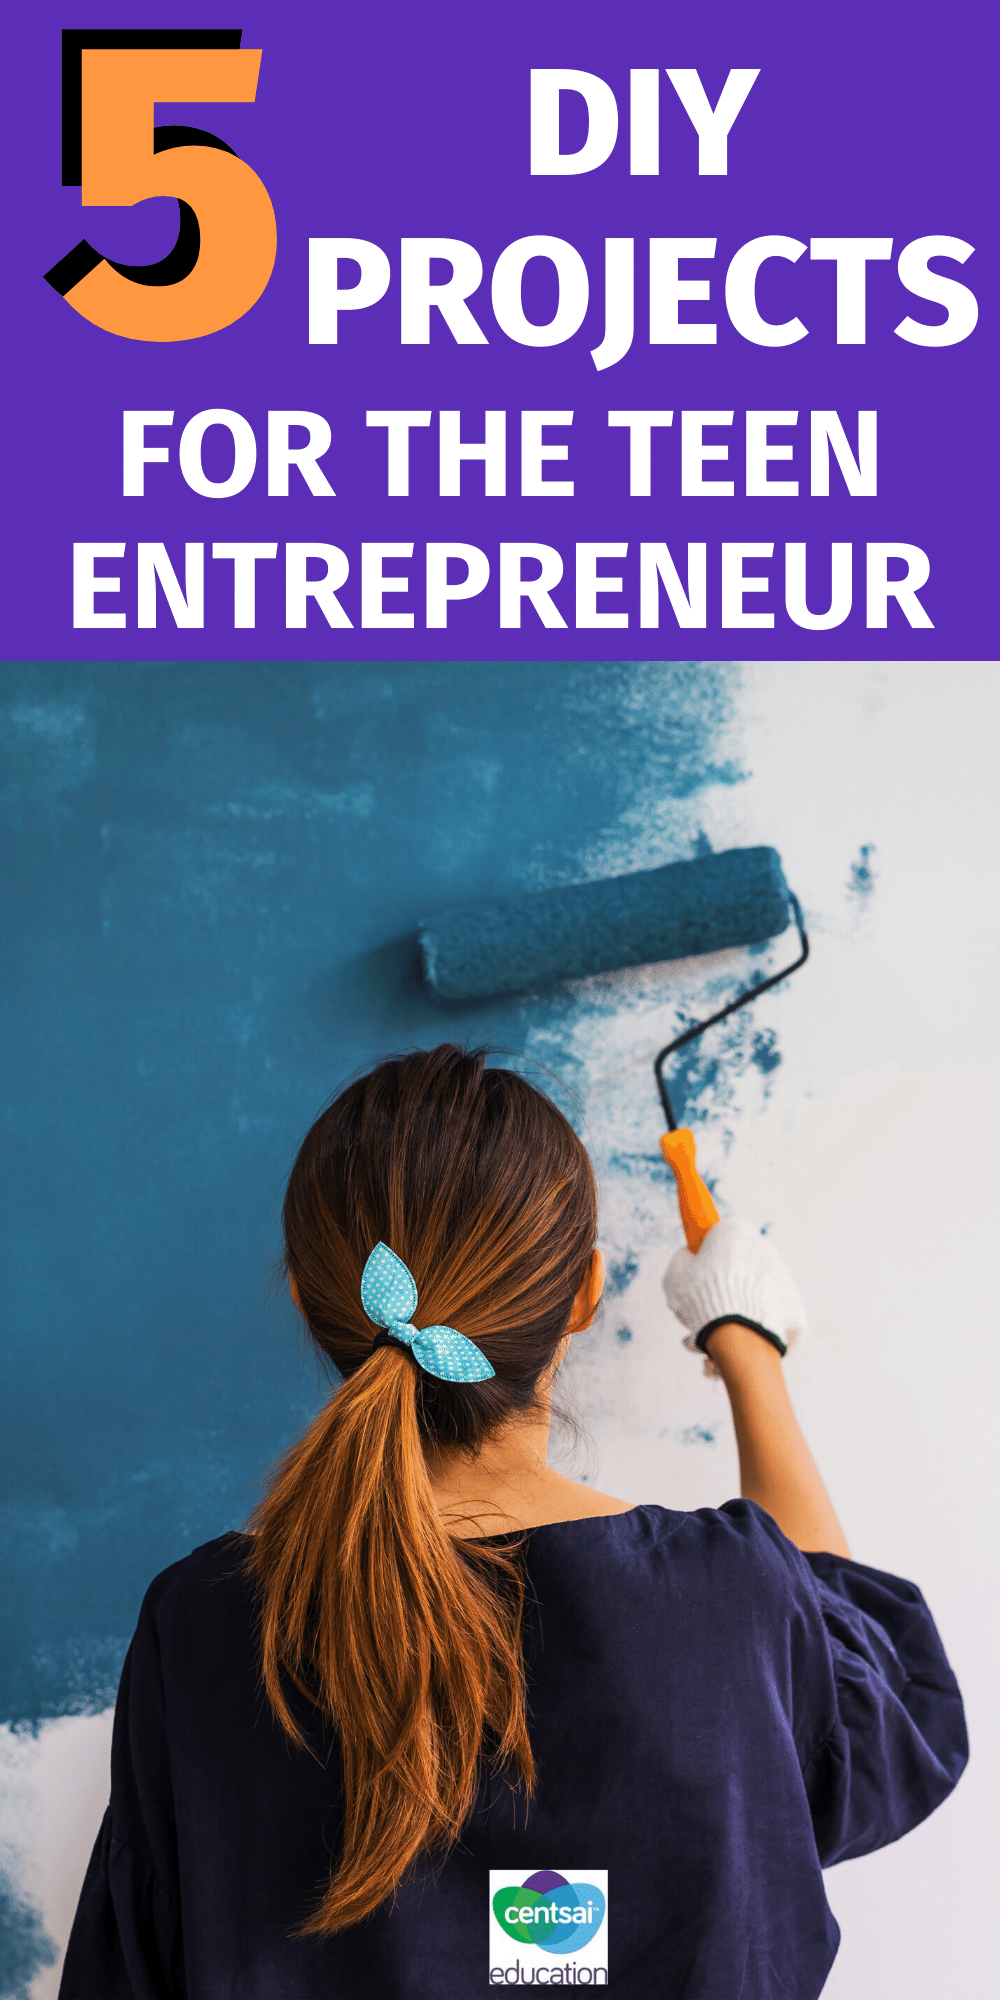 These practical DIY projects can help your students think about the possibilities of starting their own business and bring out their inner entrepreneur.